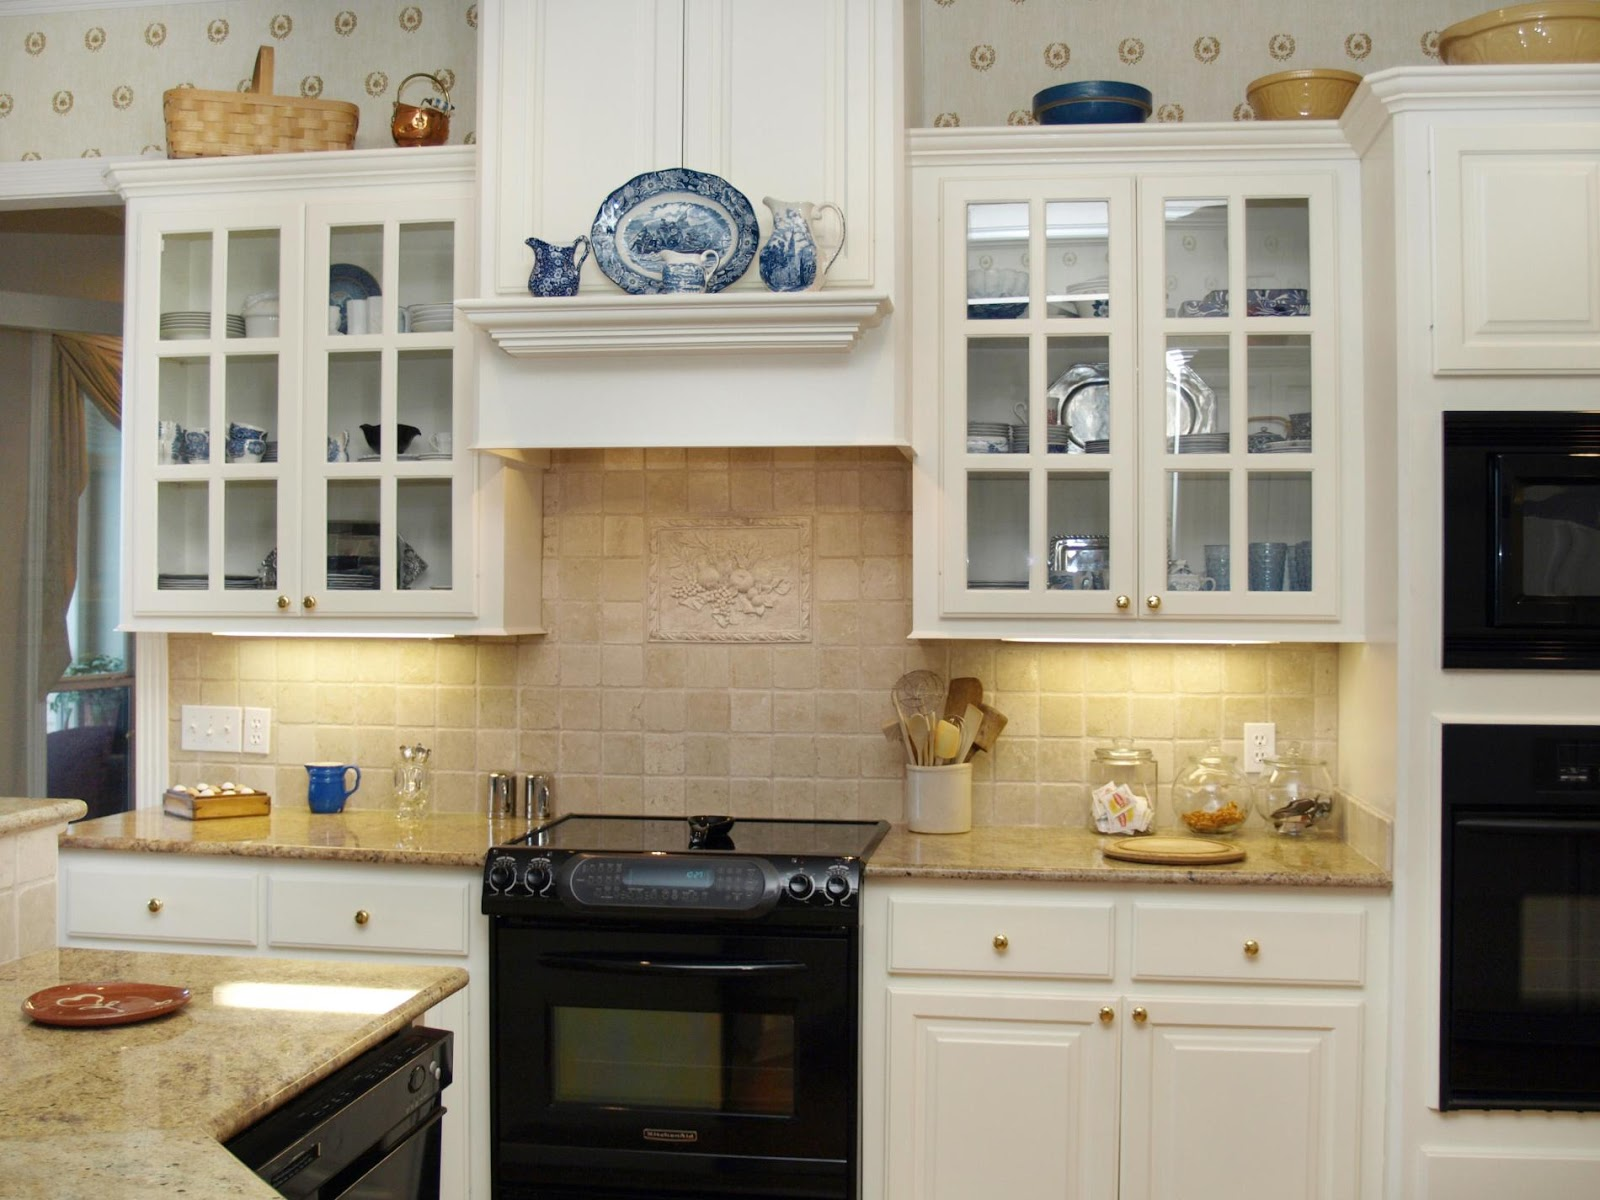 Kitchen shelves decoration dream house experience for House design kitchen ideas